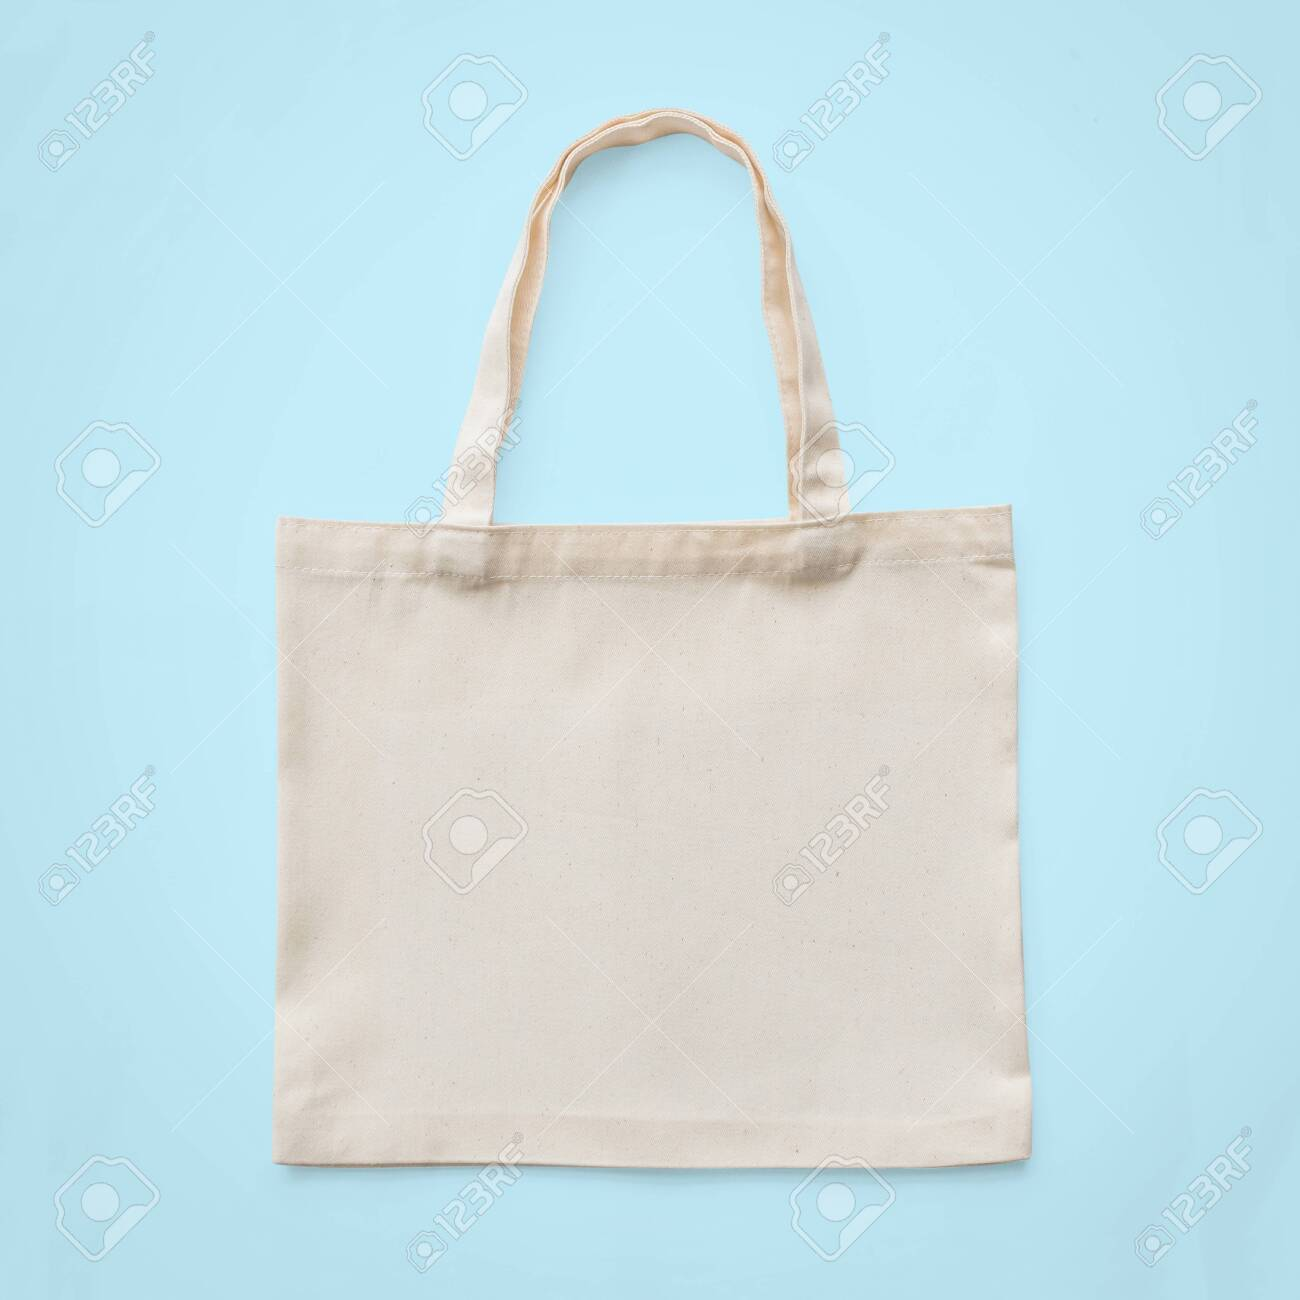 Tote bag mock up canvas white cotton fabric cloth for eco shoulder shopping sack mockup blank template isolated on pastel blue background (clipping path) - 120720329